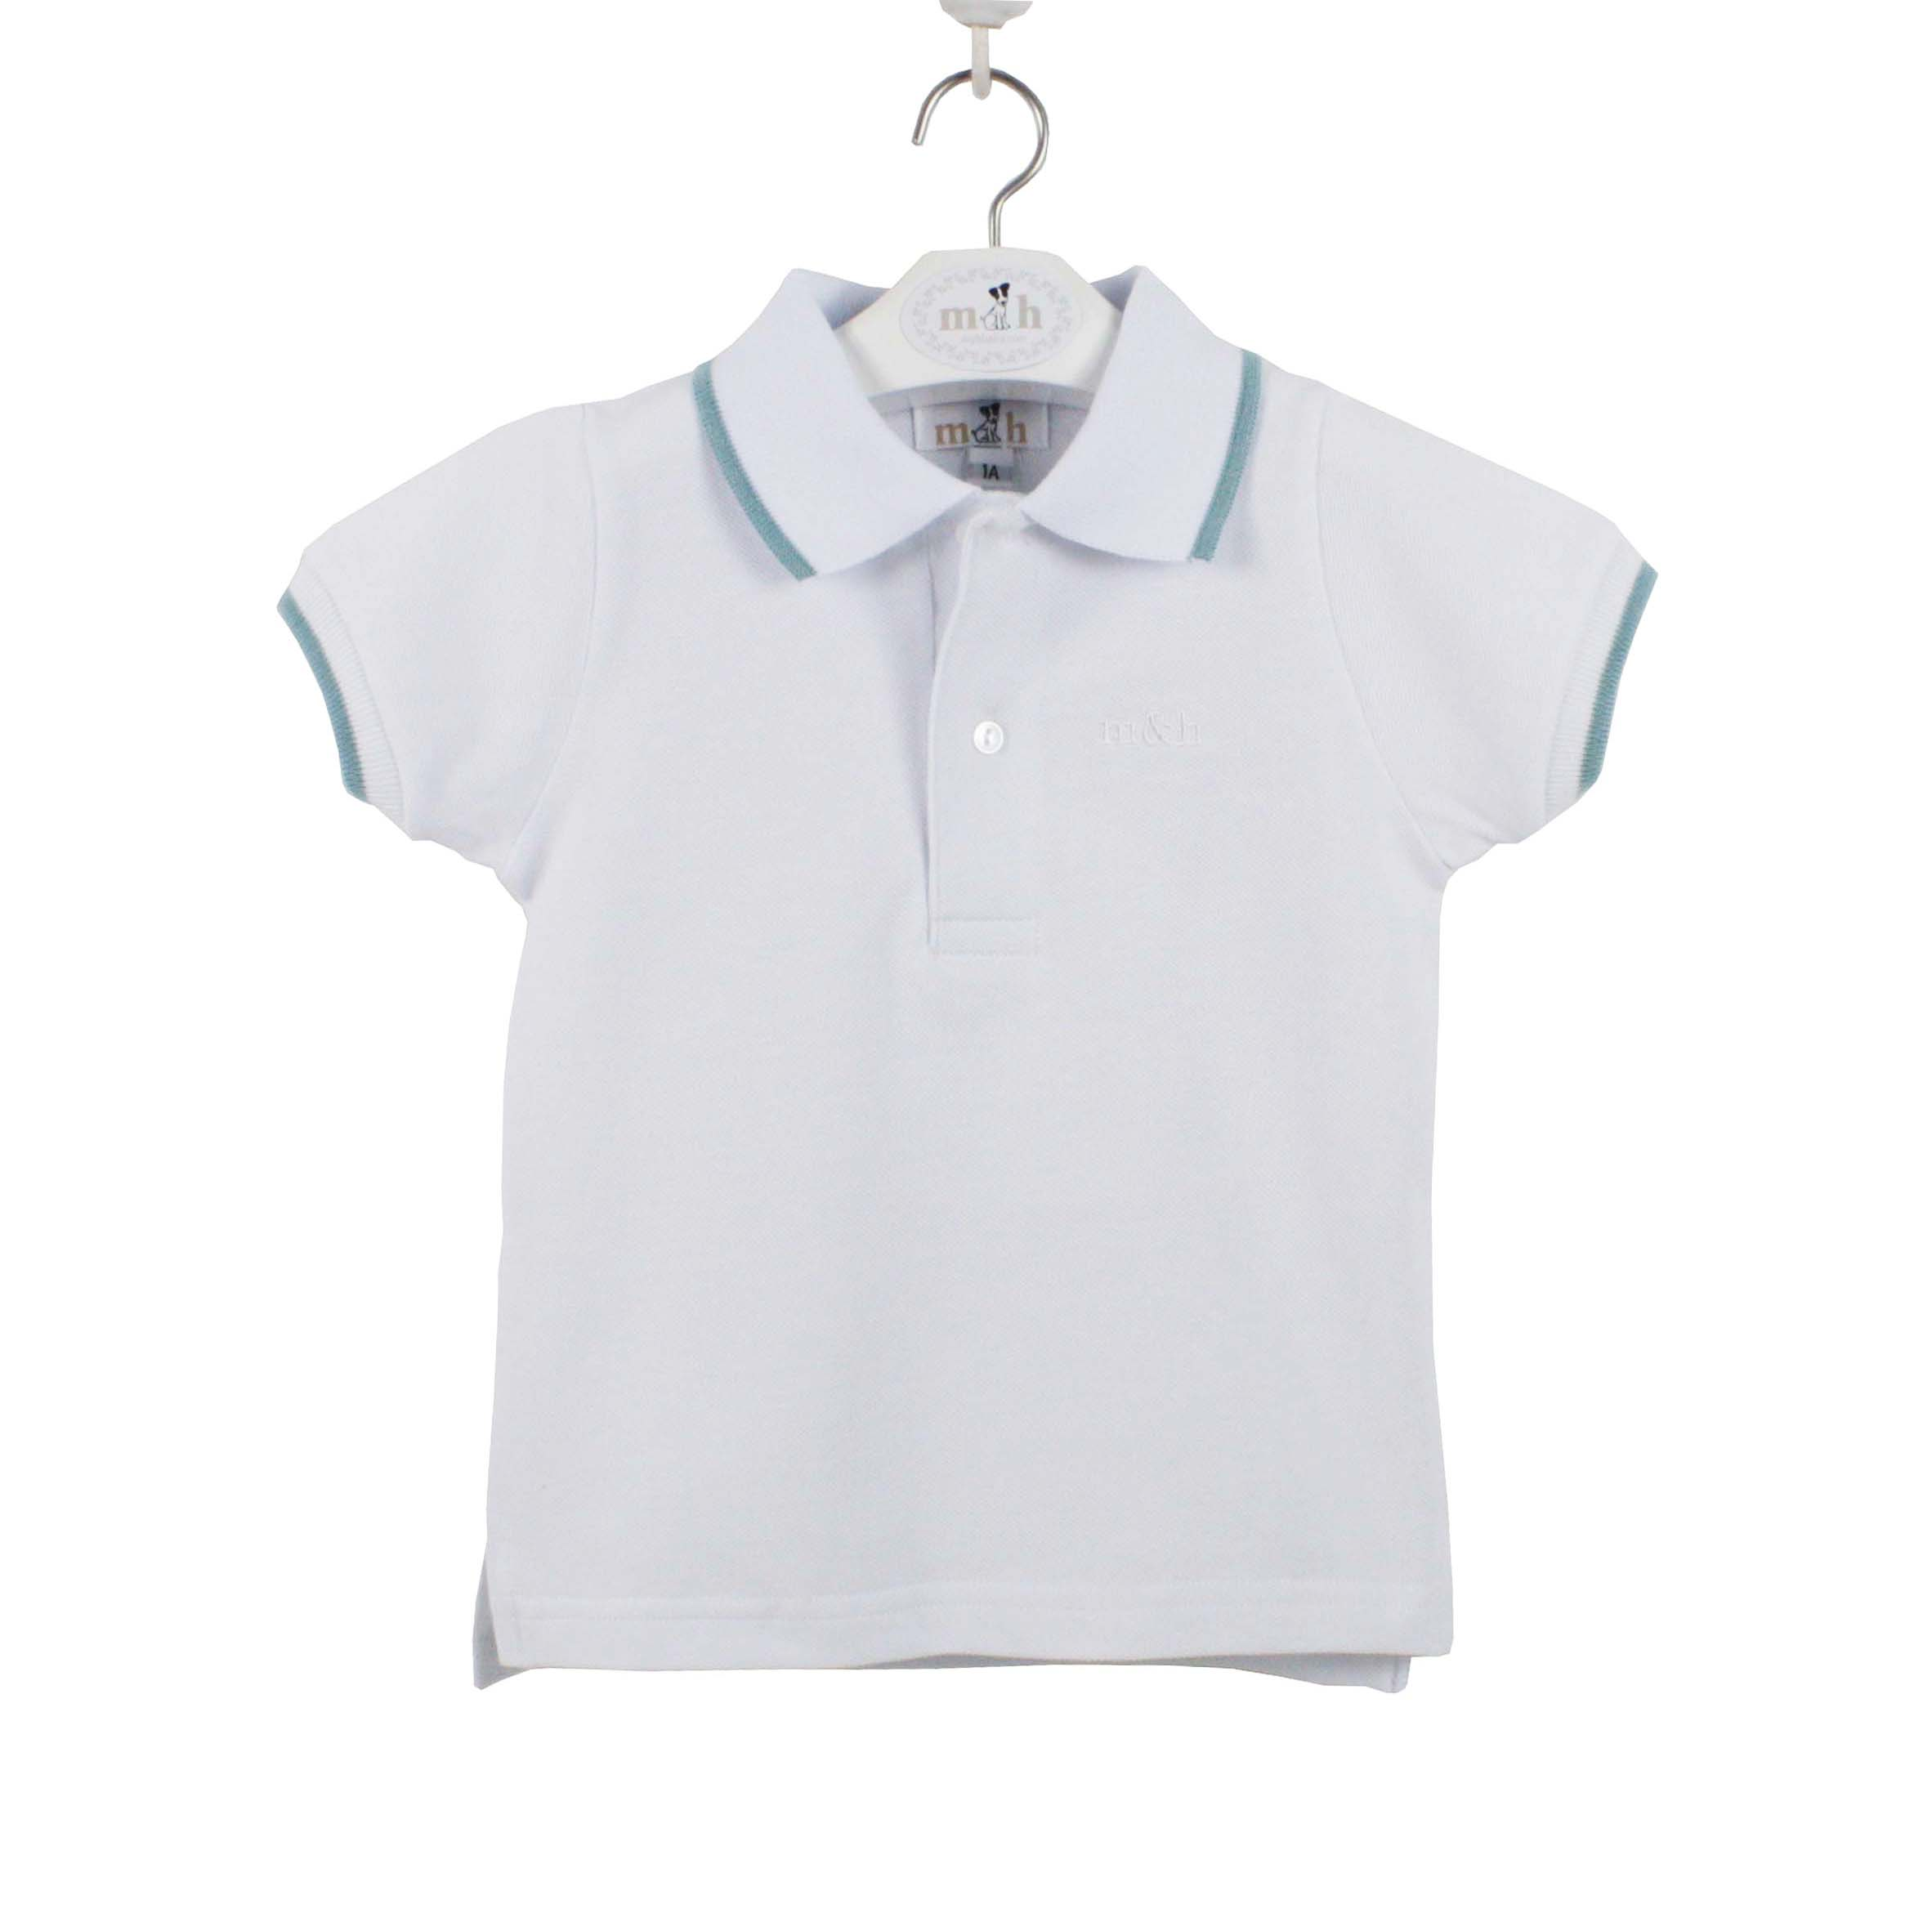 White And Green Polo Shirt With Short Sleeve